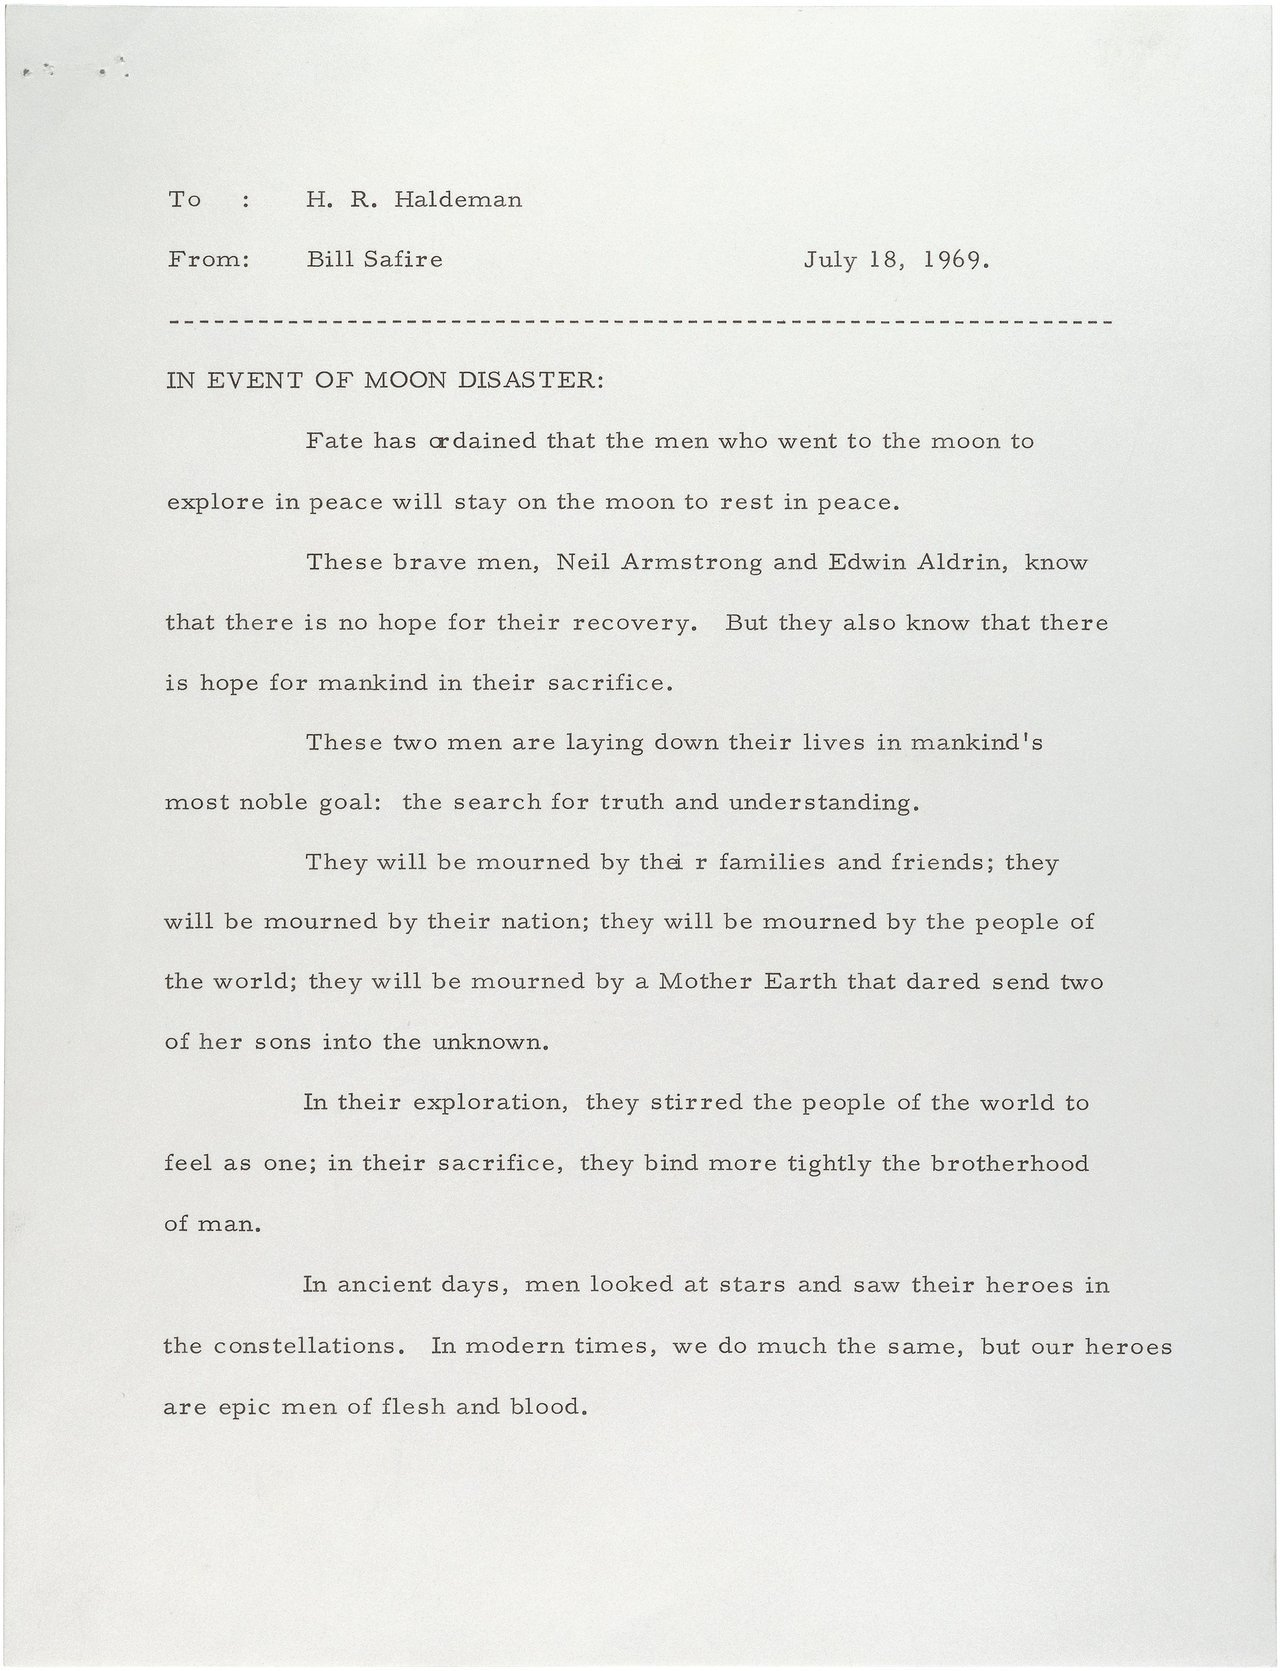 robsheridan:  A statement prepared for President Nixon to read in the event that Neil Armstrong and Buzz Aldrin became stranded on the moon.